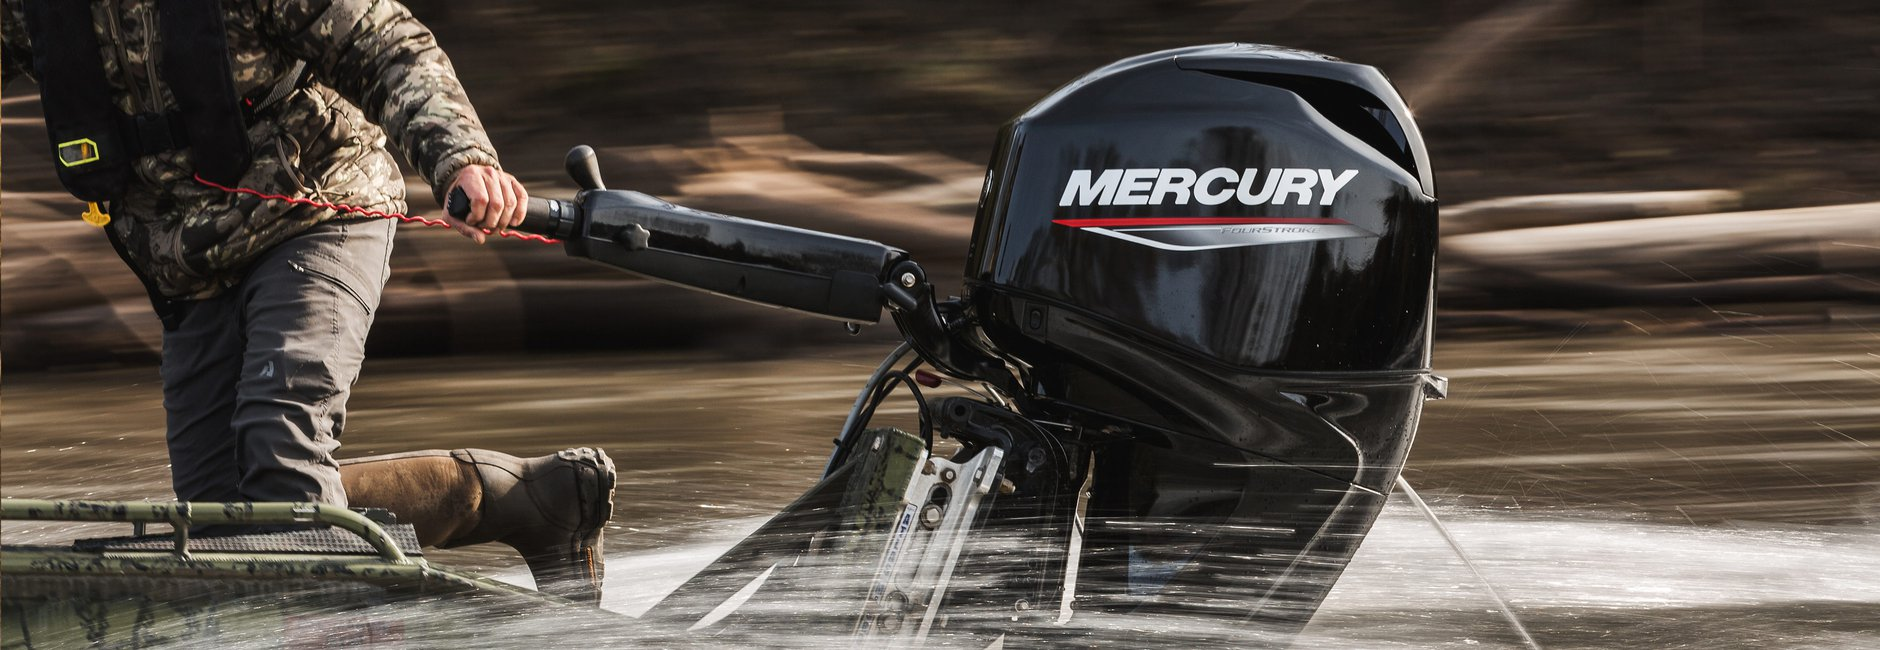 Mercury Outboard Motors: Supercharged and Built for Performance